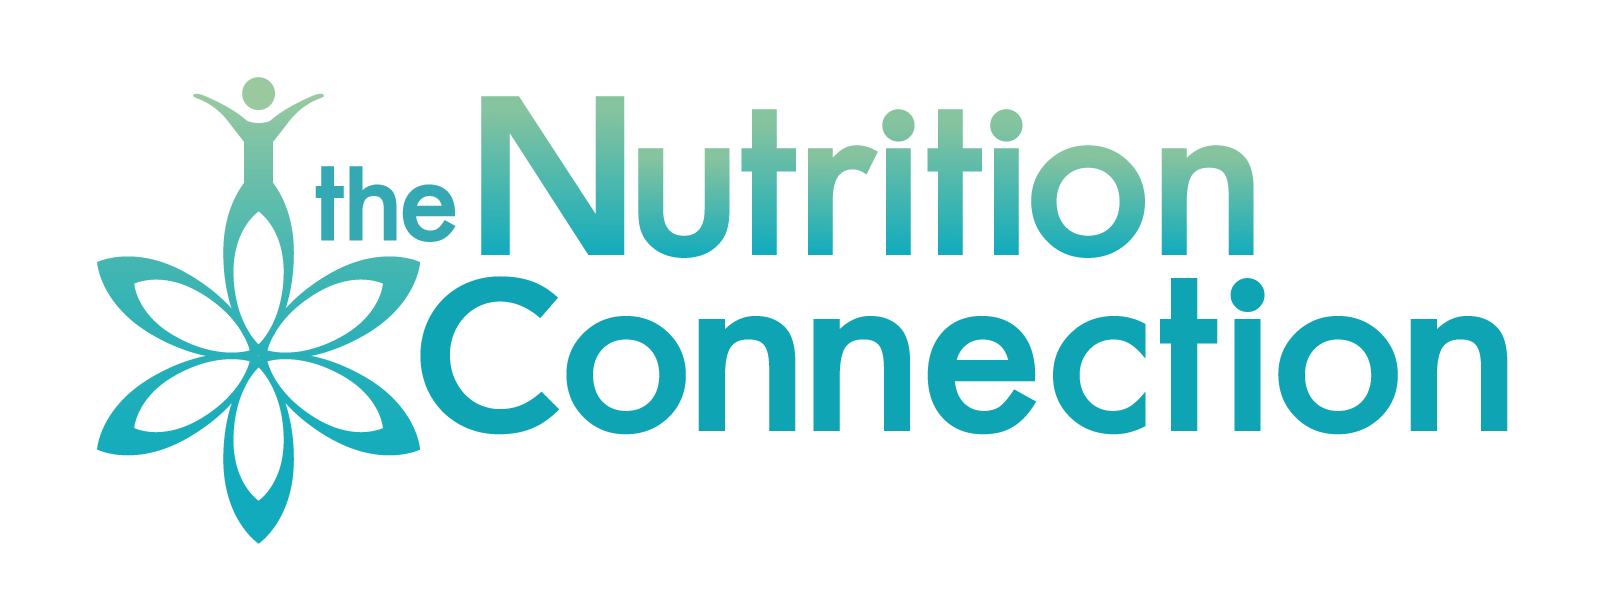 The Nutrition Connection Logo